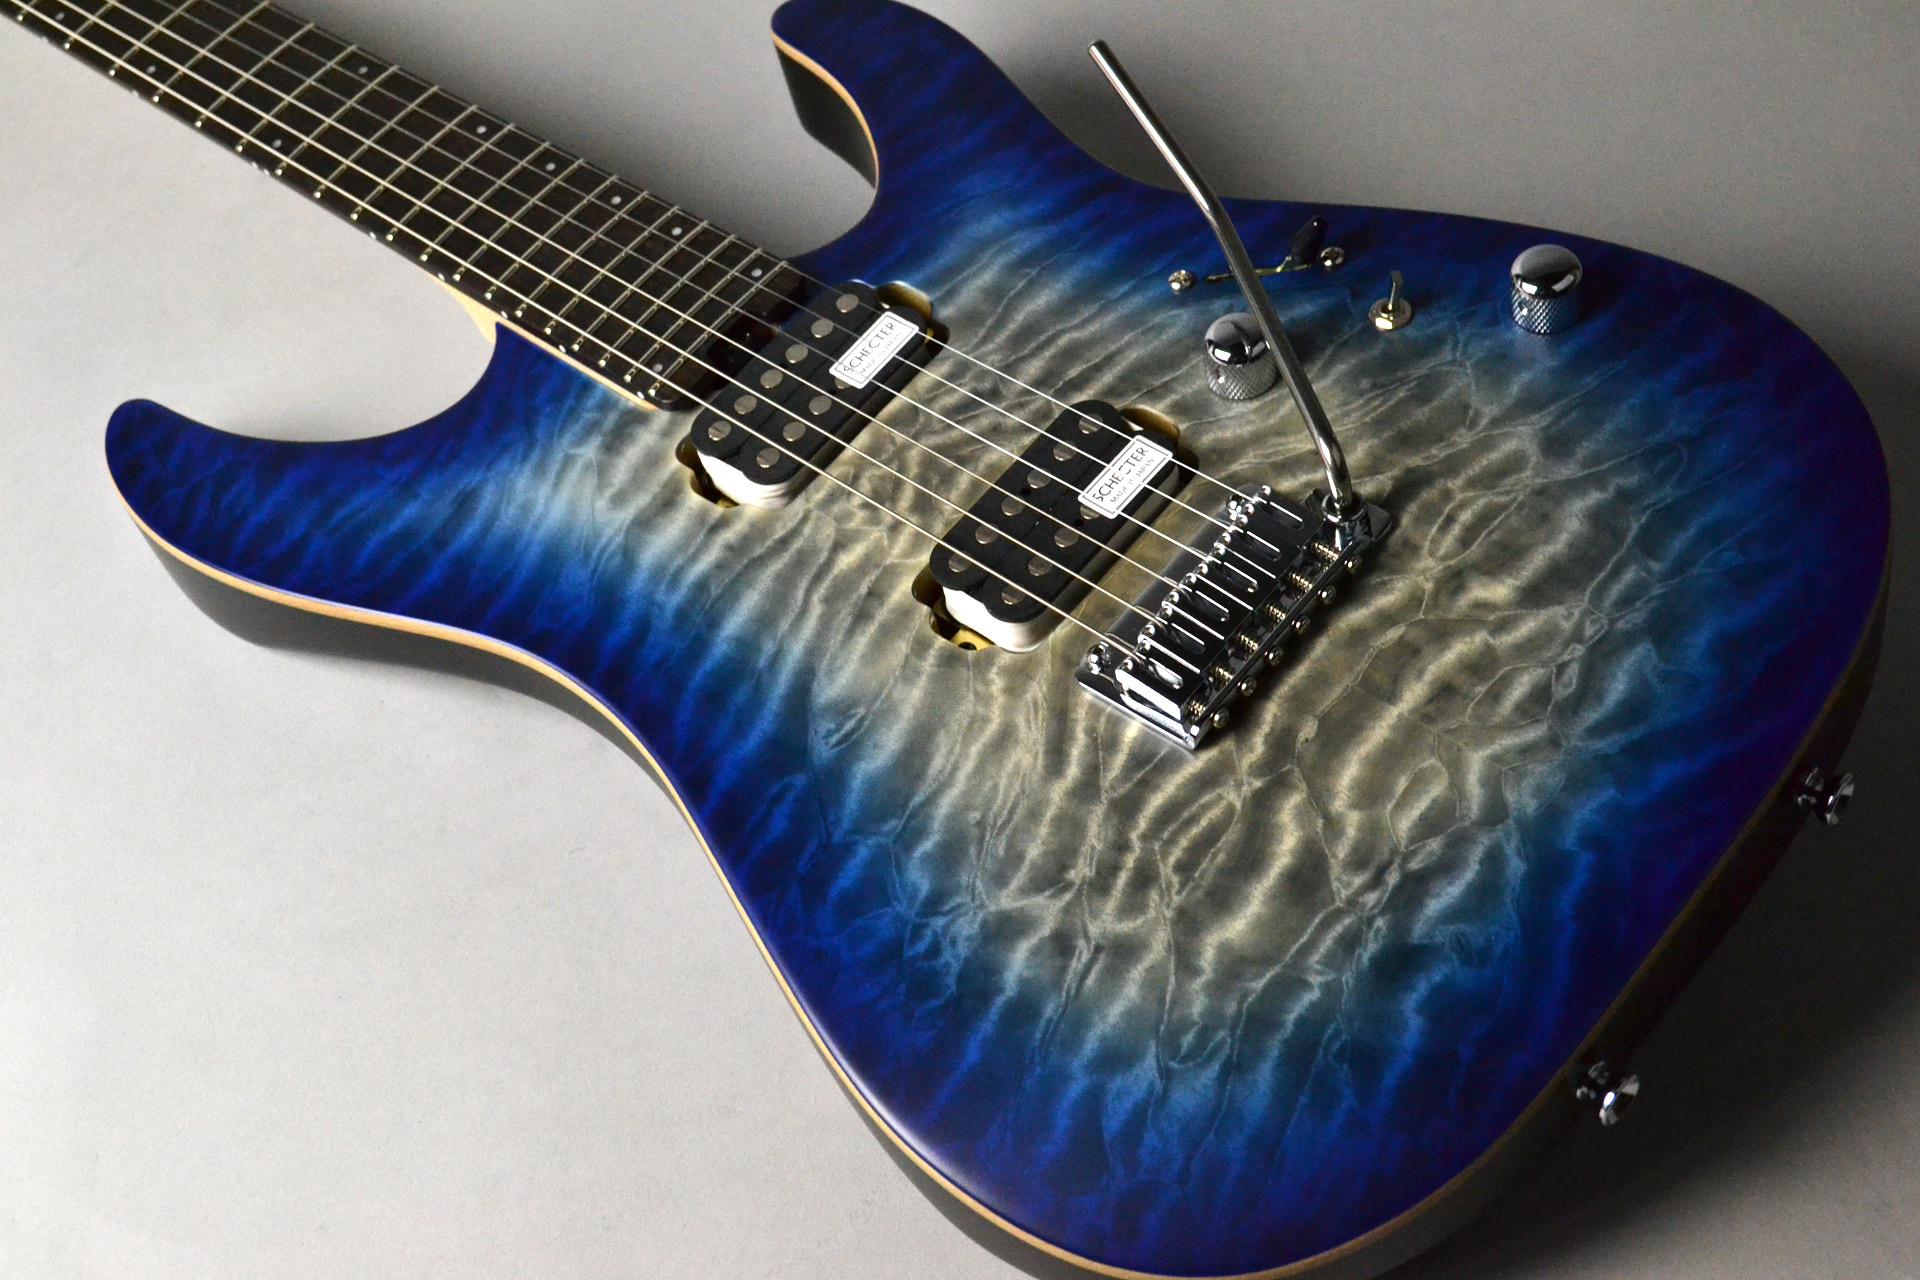 L-NV-3-24-AL-2HVTR/R	Trans Blue Natural Burst Satinの全体画像(縦)